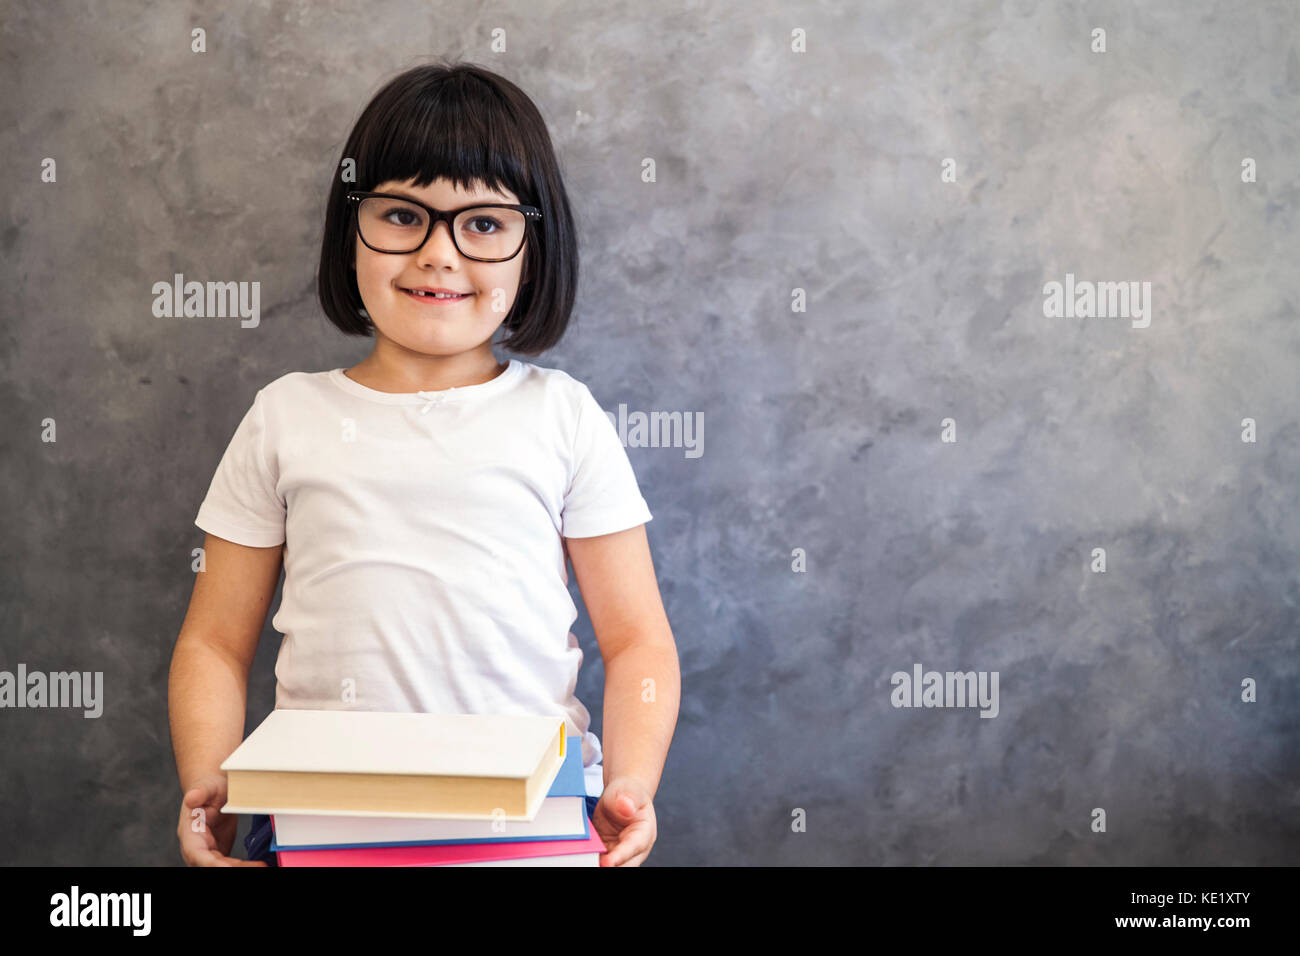 247fc37229c3 Portrait of smiling black hair little girl with glasses holding books by the  wall - Stock